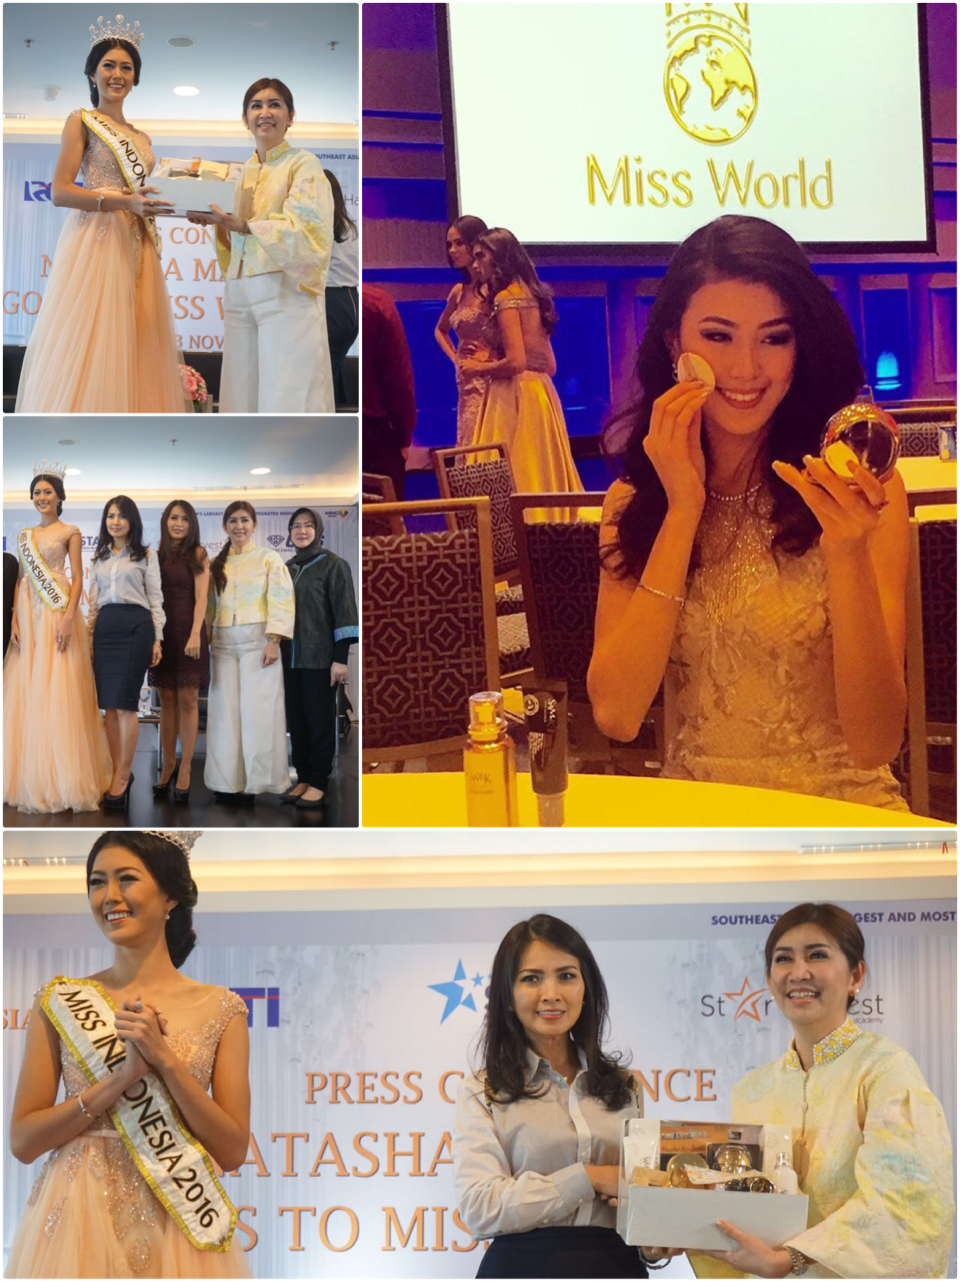 SAMKIM - Natasha Mannuela Miss World 2016